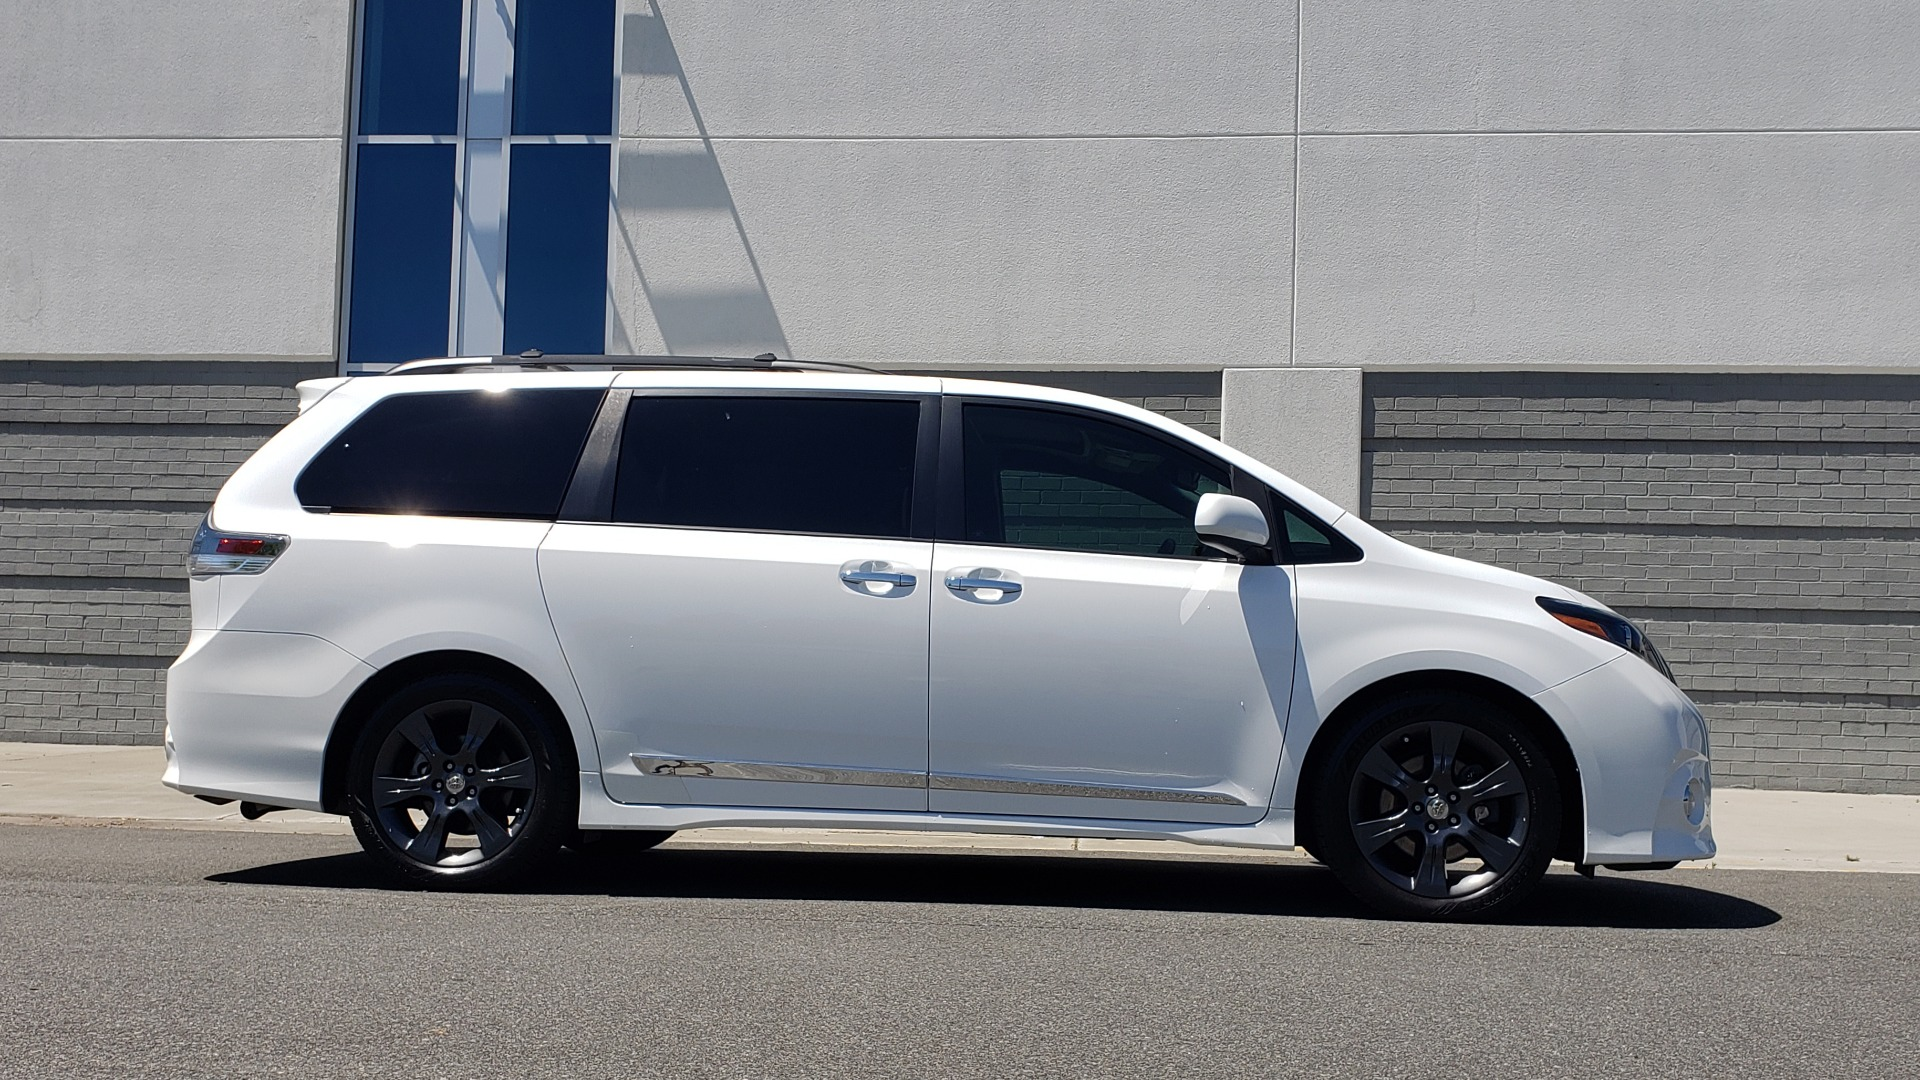 Used 2015 Toyota SIENNA SE 3.5L / FWD / 3-ROWS / 8-PASS / SUNROOF / DVD / REARVIEW for sale $21,995 at Formula Imports in Charlotte NC 28227 10